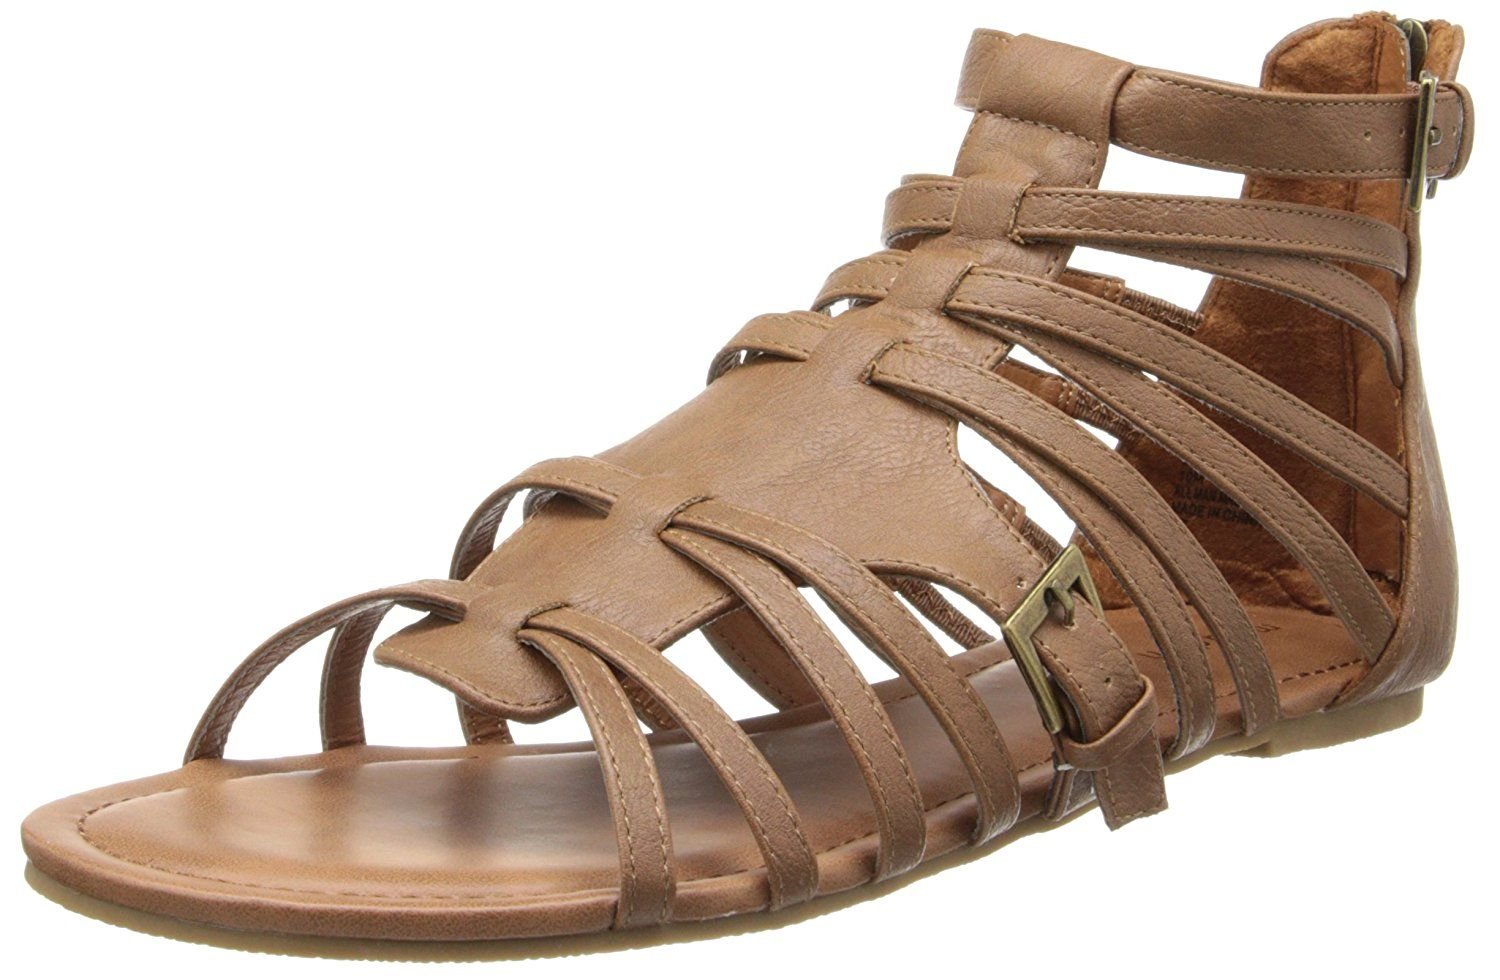 e80dd61daa7d Madden Girl Women s Maximuss Gladiator Sandal   New and awesome product  awaits you